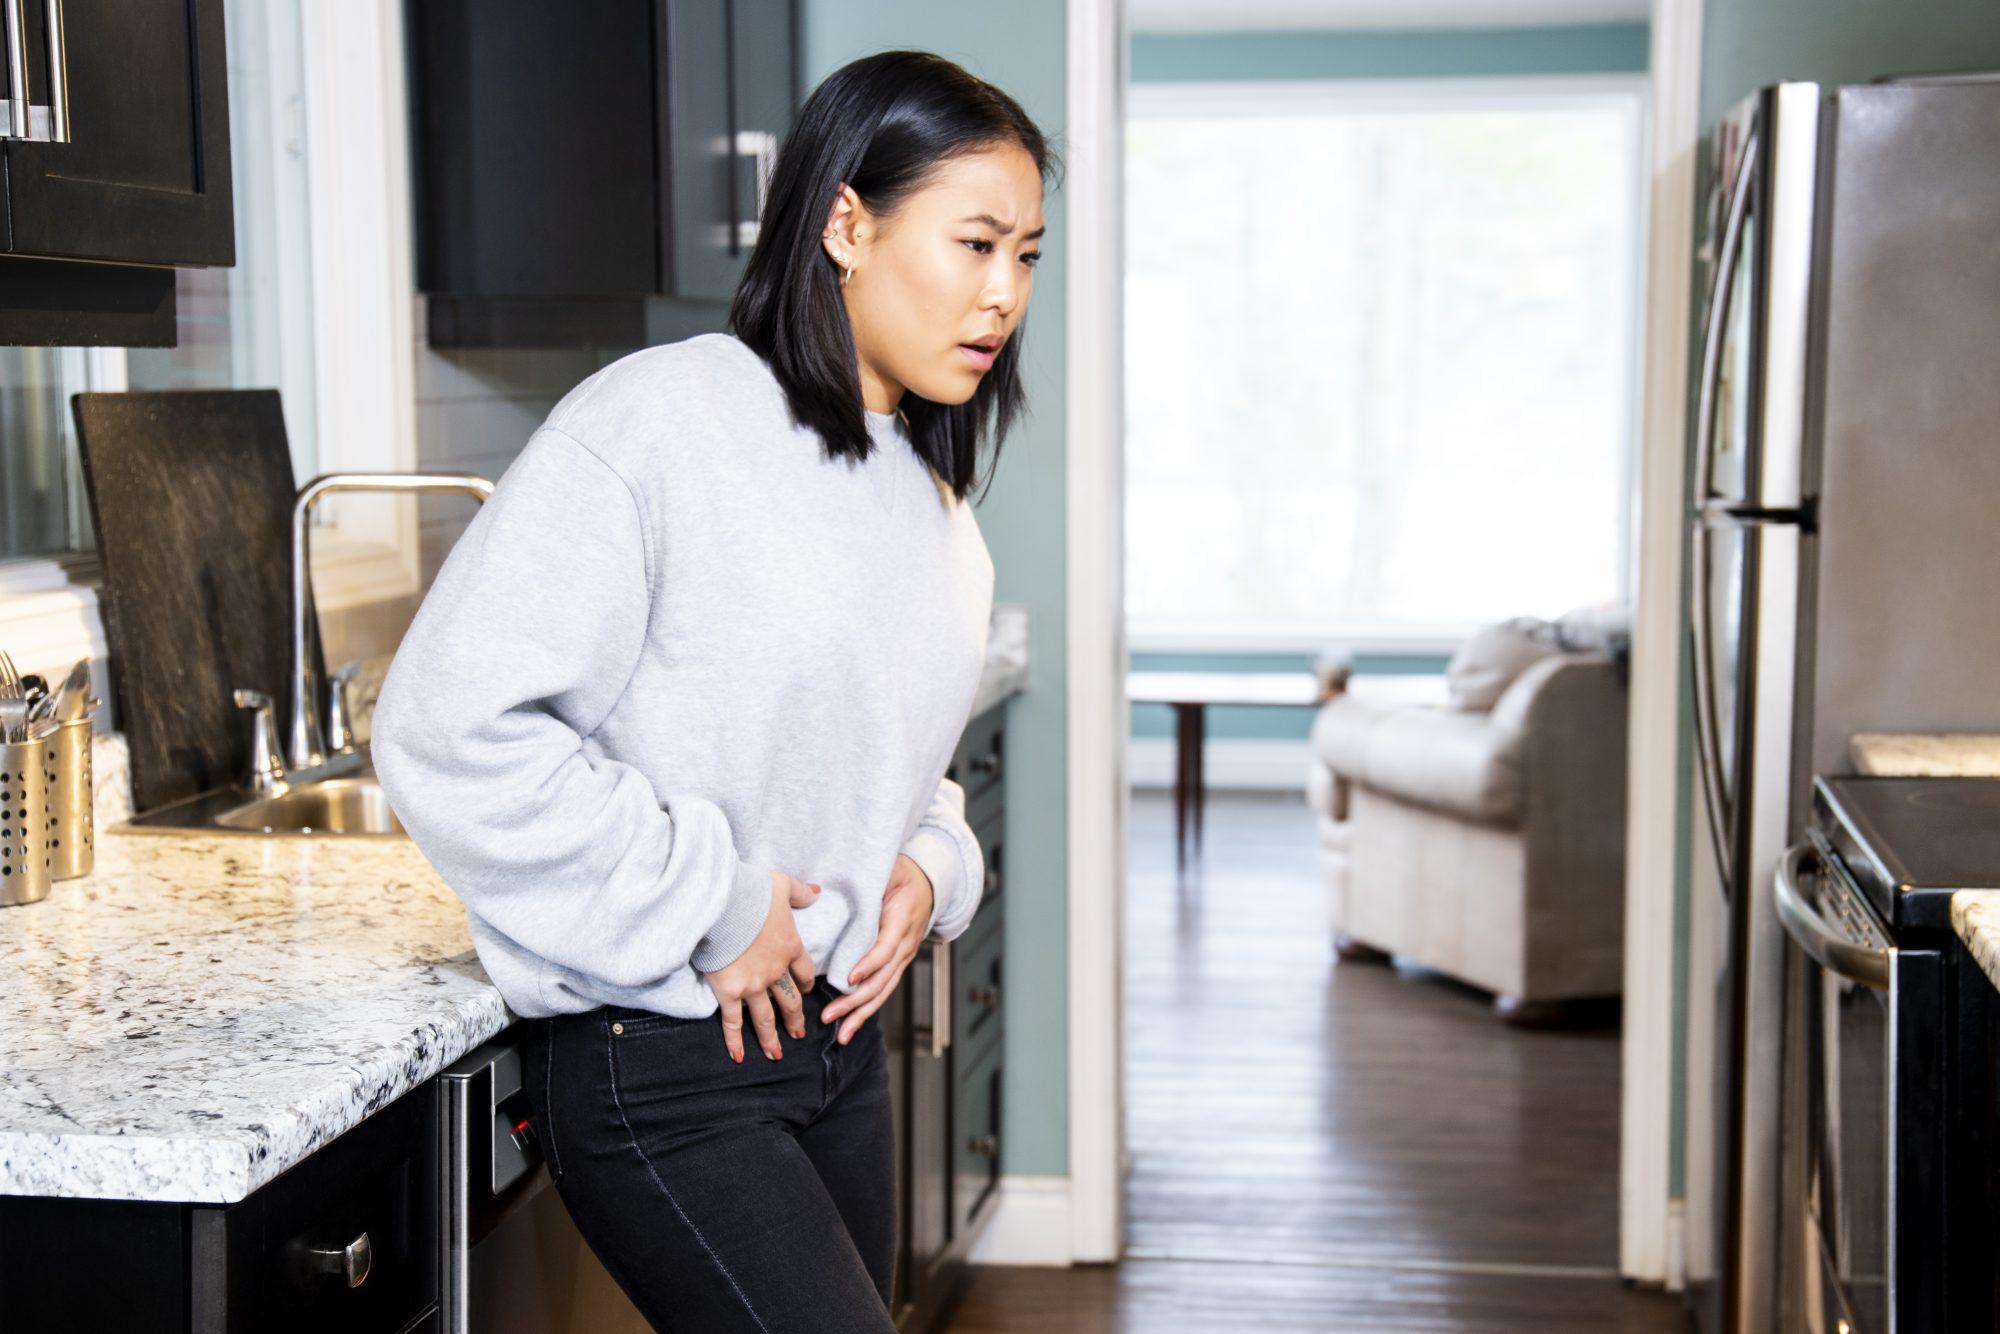 woman touching stomach standing in kitchen